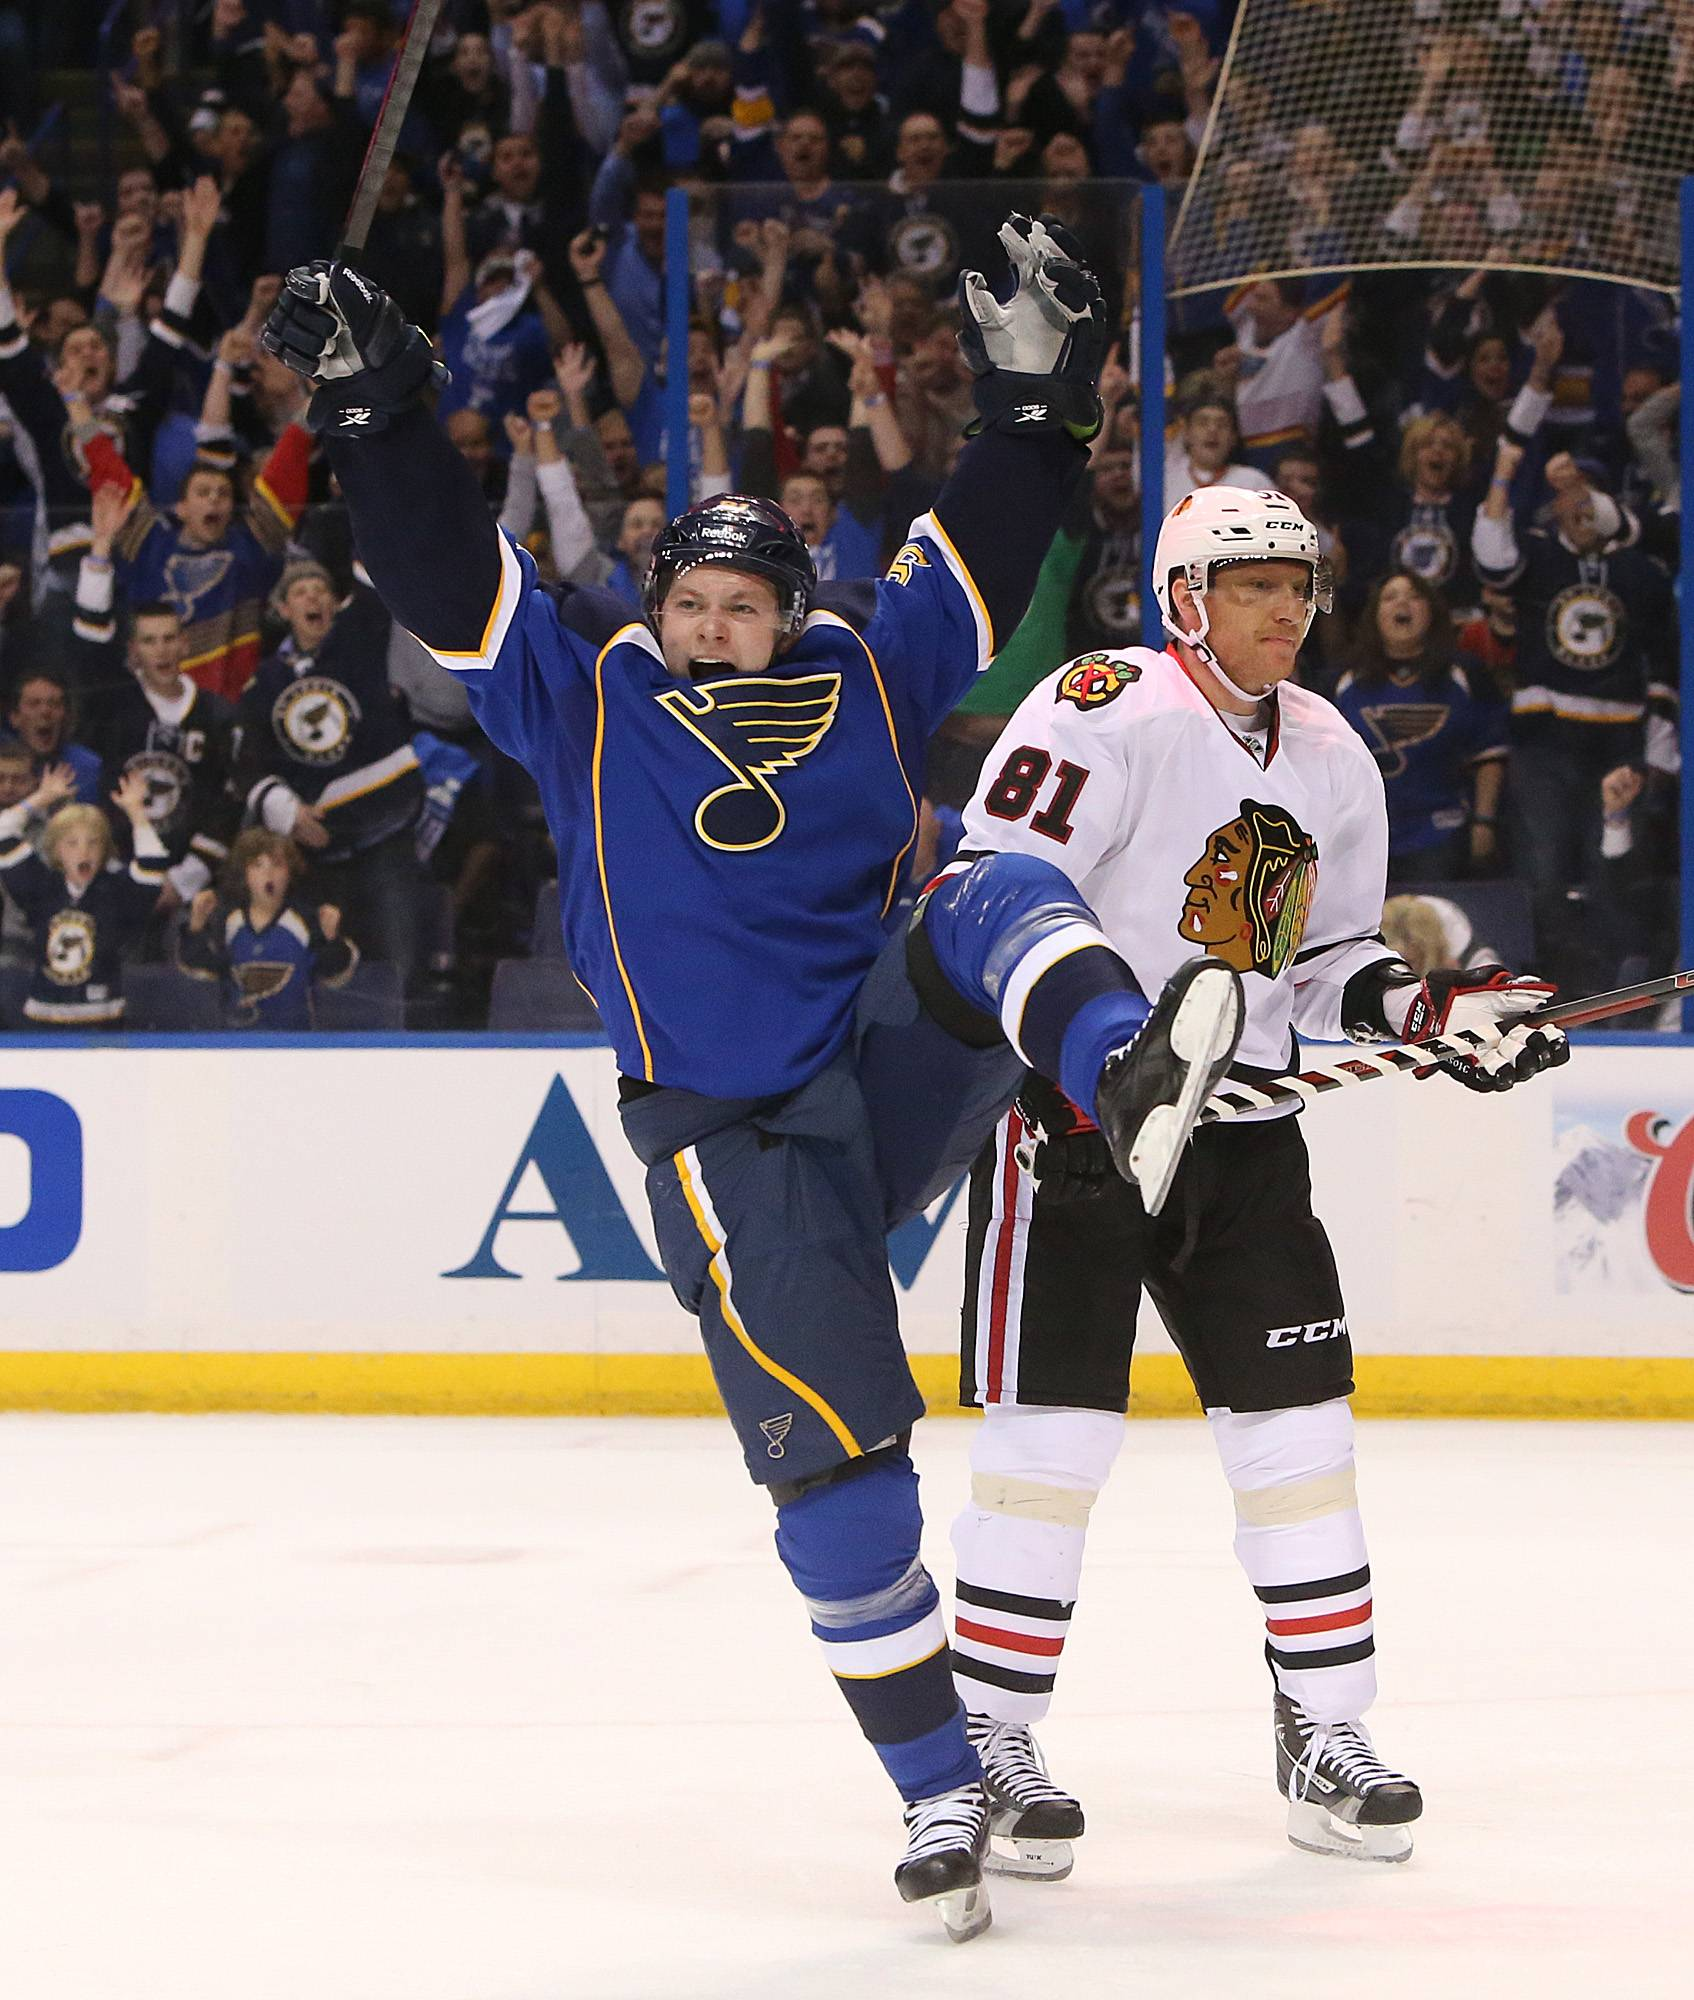 St. Louis Blues right wing Vladimir Tarasenko, left, reacts after scoring a goal against the Chicago Blackhawks during the first period . At right is Blackhawks' Marian Hossa.